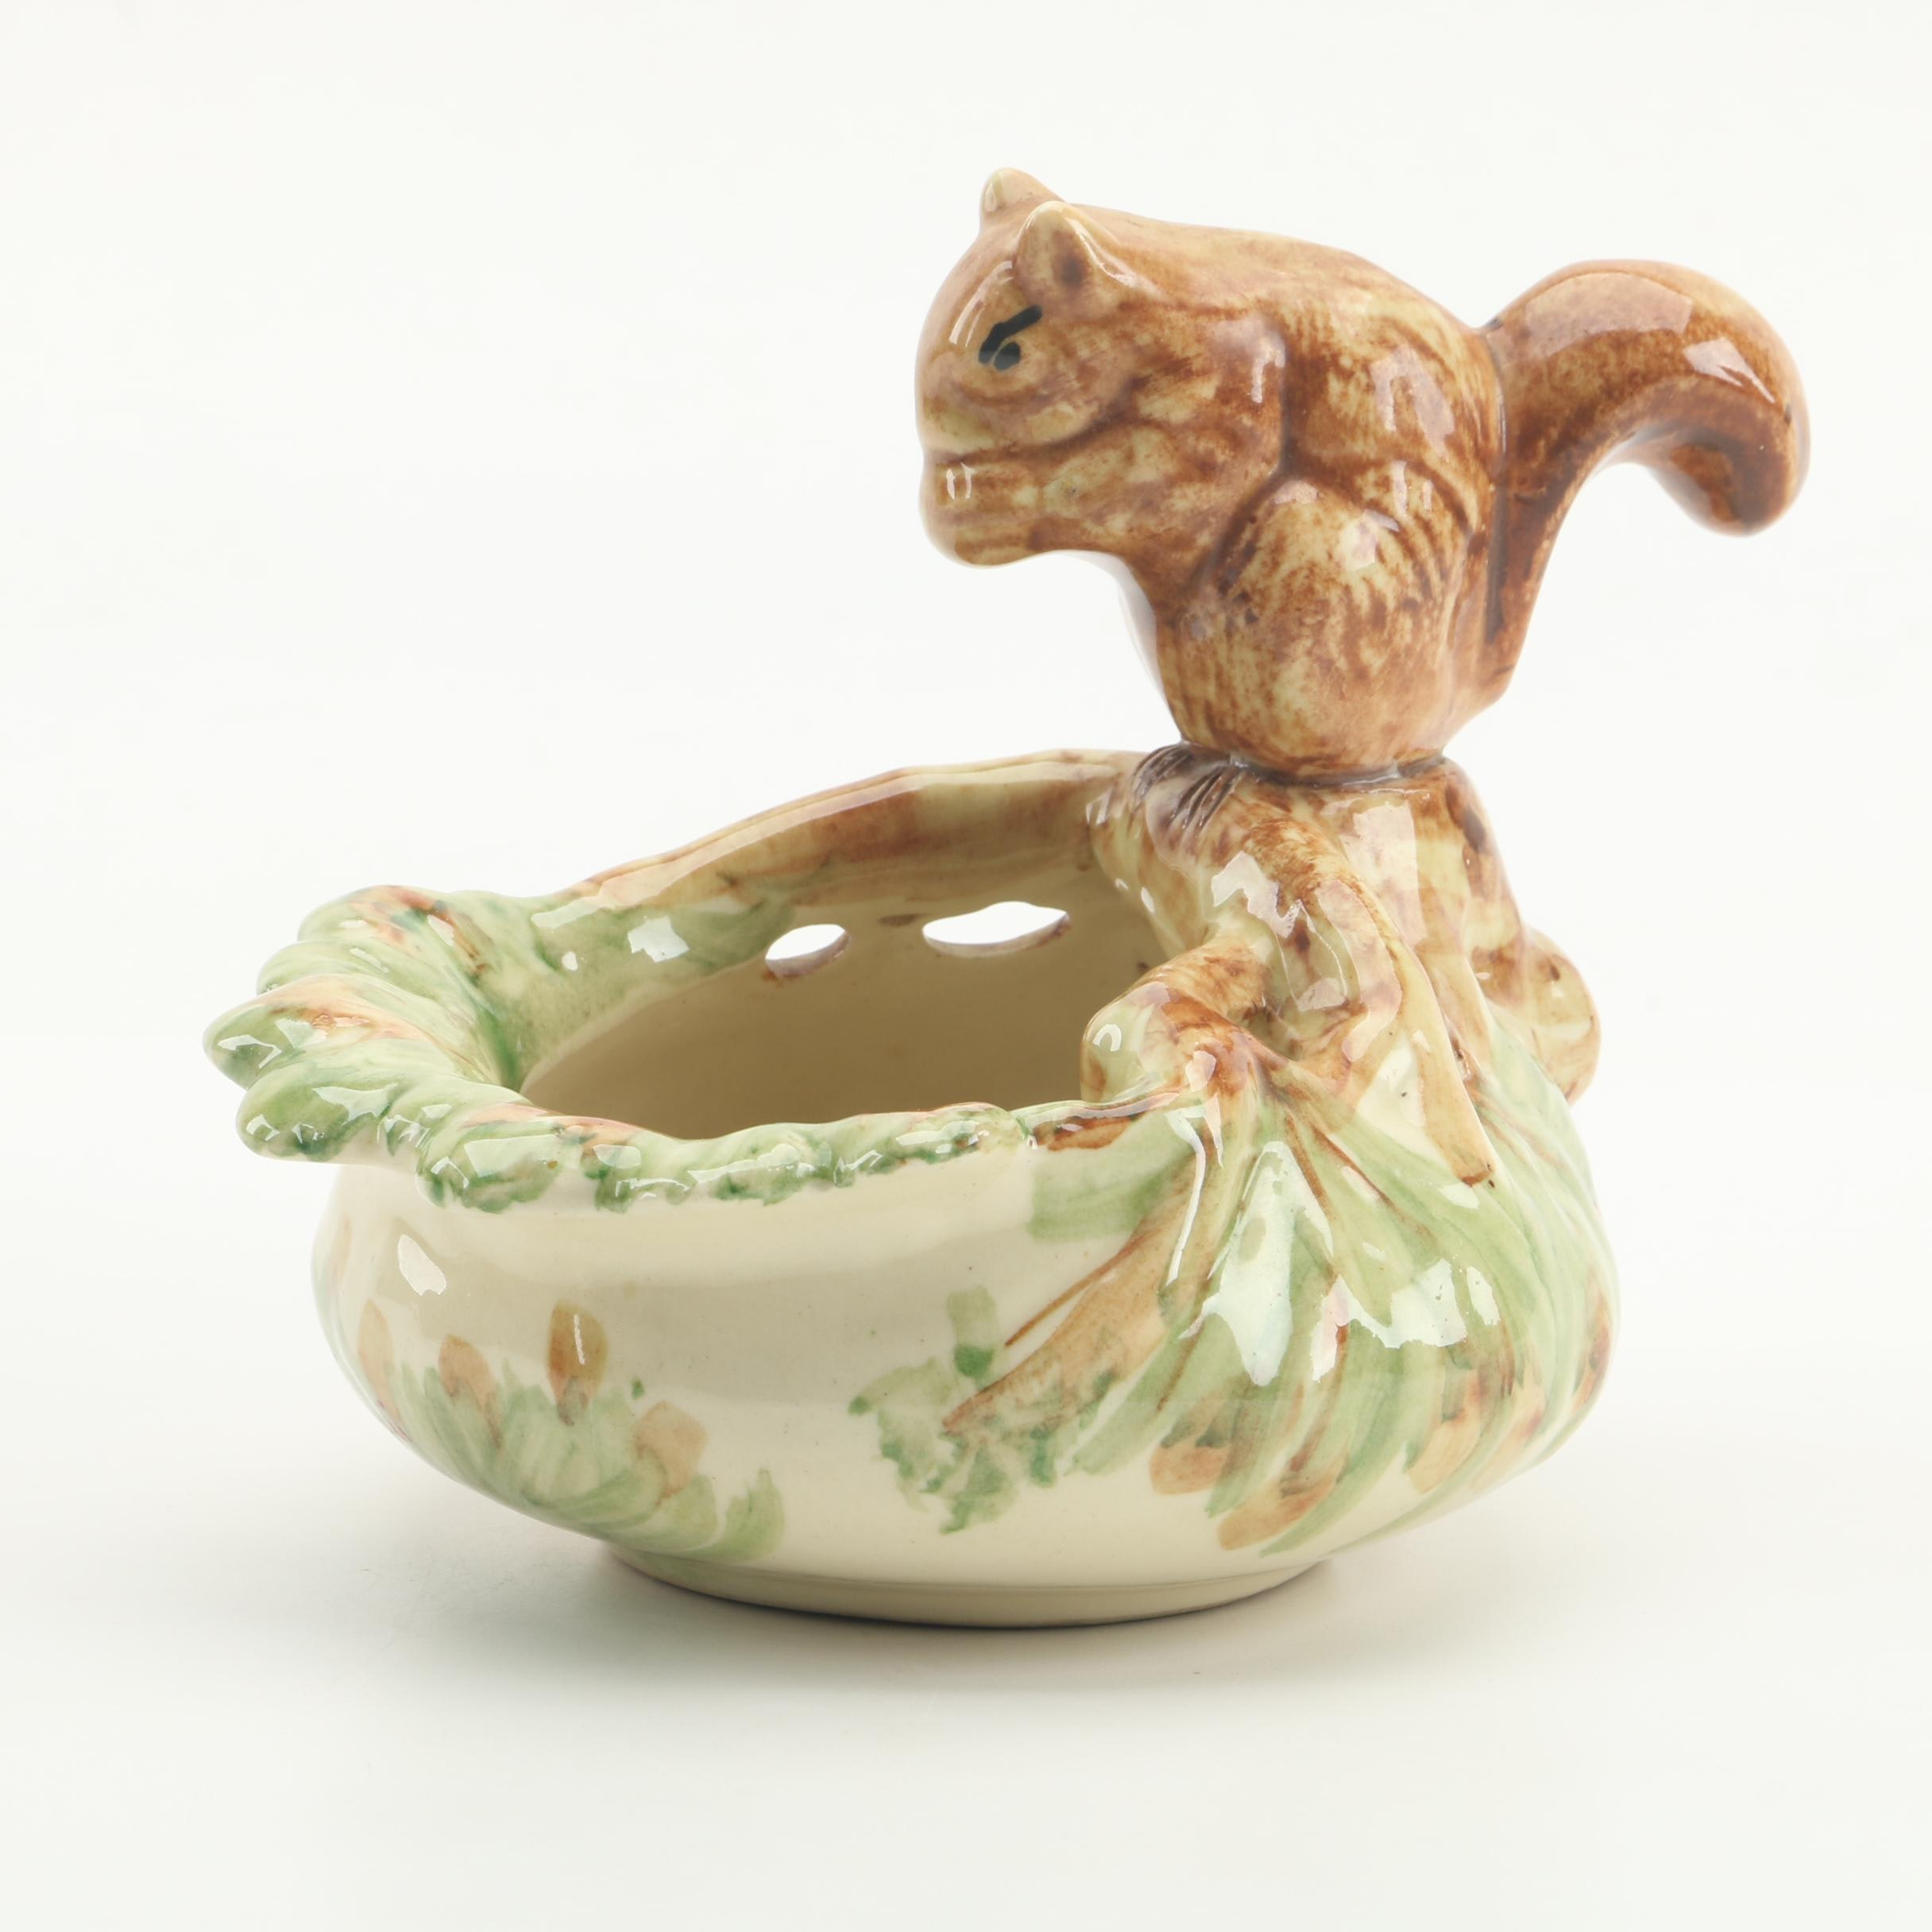 """Weller Pottery """"Woodcraft"""" Squirrel Nut Dish, Early 20th Century"""